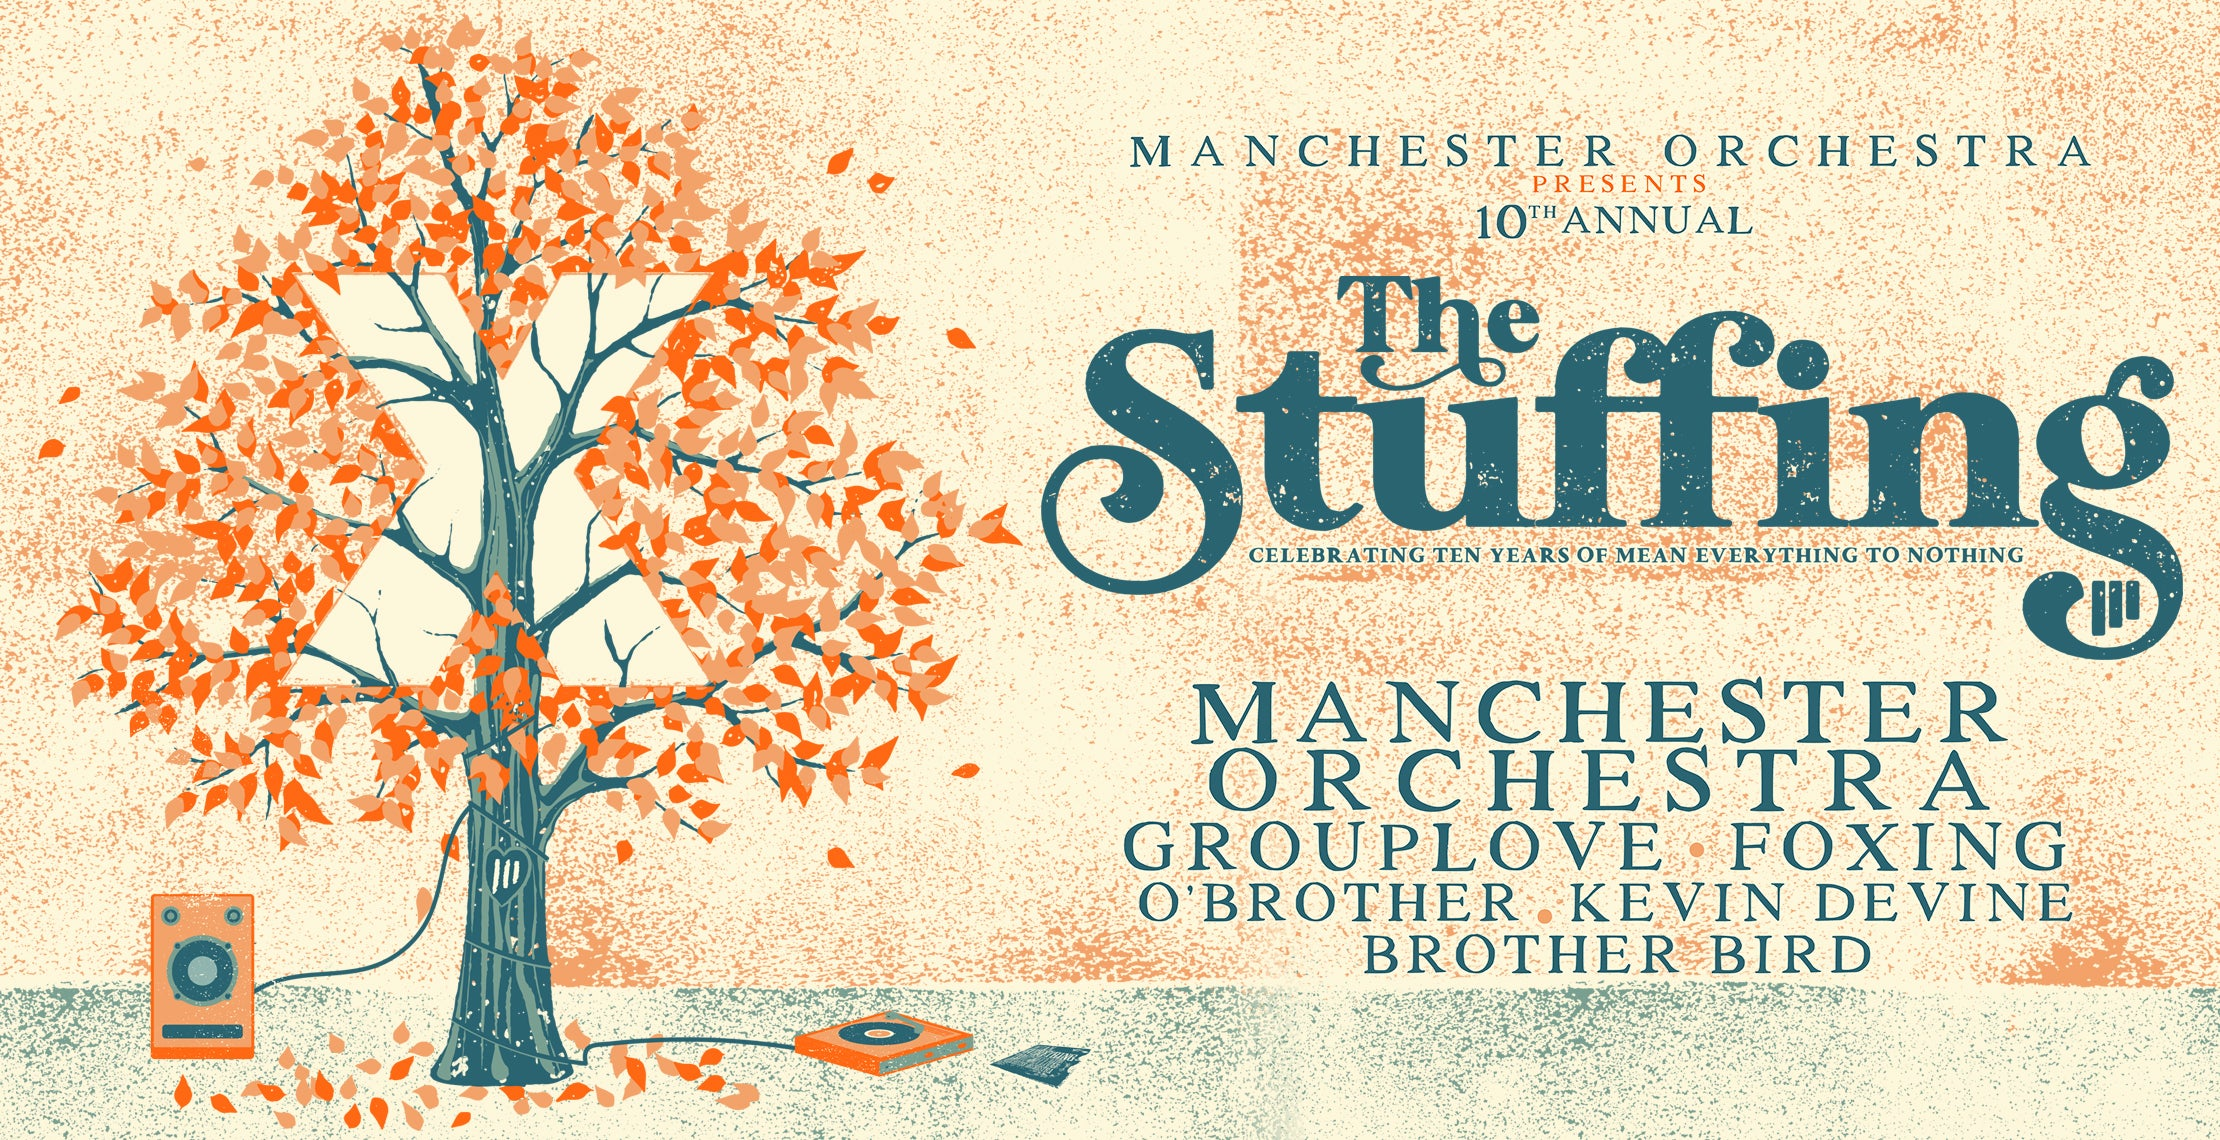 Manchester Orchestra presents The Stuffing